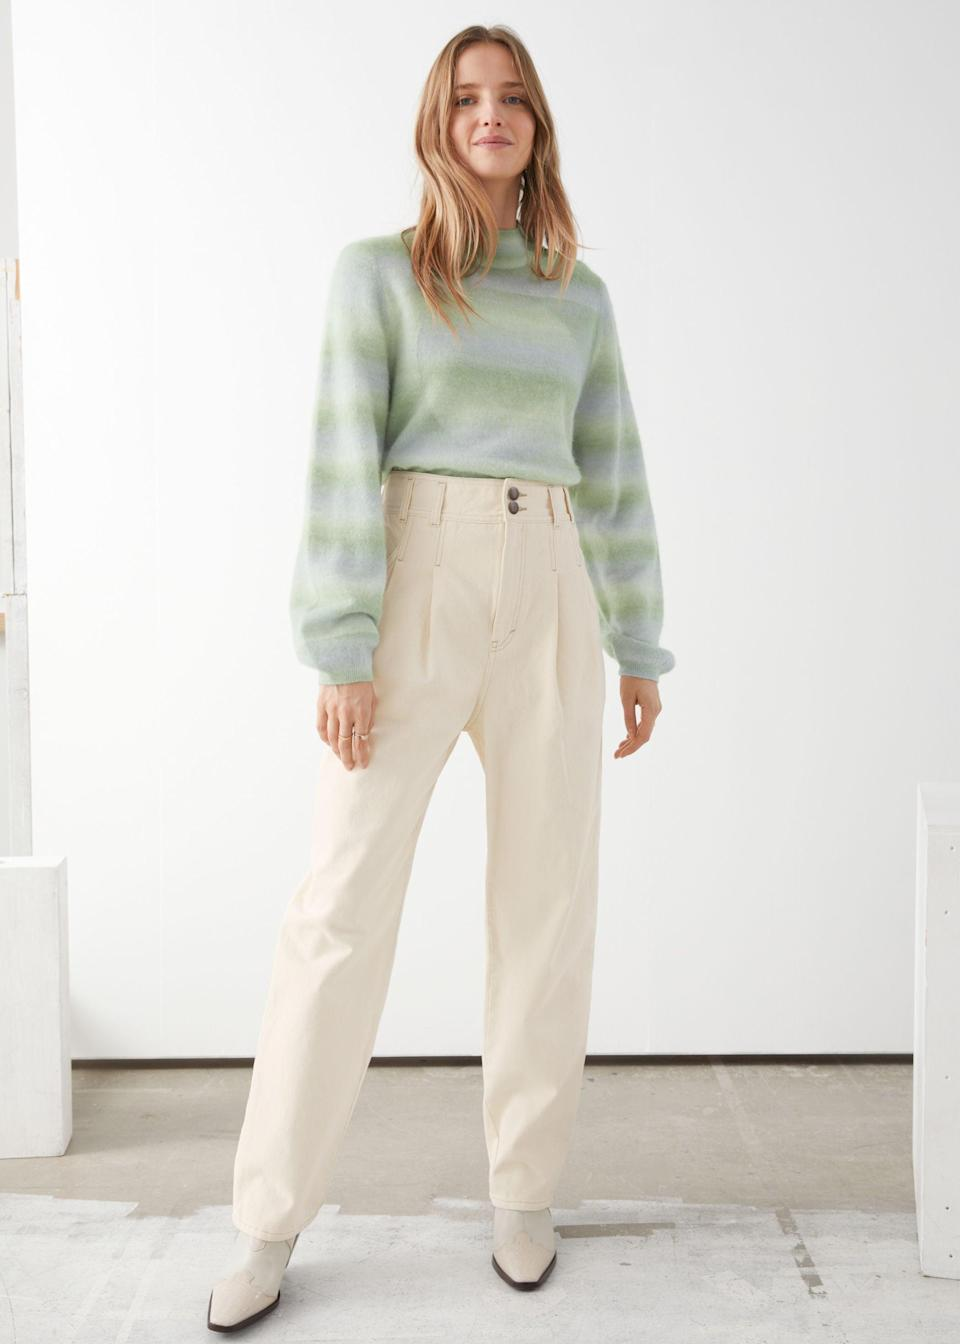 """<br> <br> <strong>& Other Stories</strong> High Rise Pleated Jeans, $, available at <a href=""""https://go.skimresources.com/?id=30283X879131&url=https%3A%2F%2Fwww.stories.com%2Fen_usd%2Fclothing%2Fjeans%2Fproduct.high-rise-pleated-jeans-white.0816018002.html"""" rel=""""nofollow noopener"""" target=""""_blank"""" data-ylk=""""slk:& Other Stories"""" class=""""link rapid-noclick-resp"""">& Other Stories</a>"""